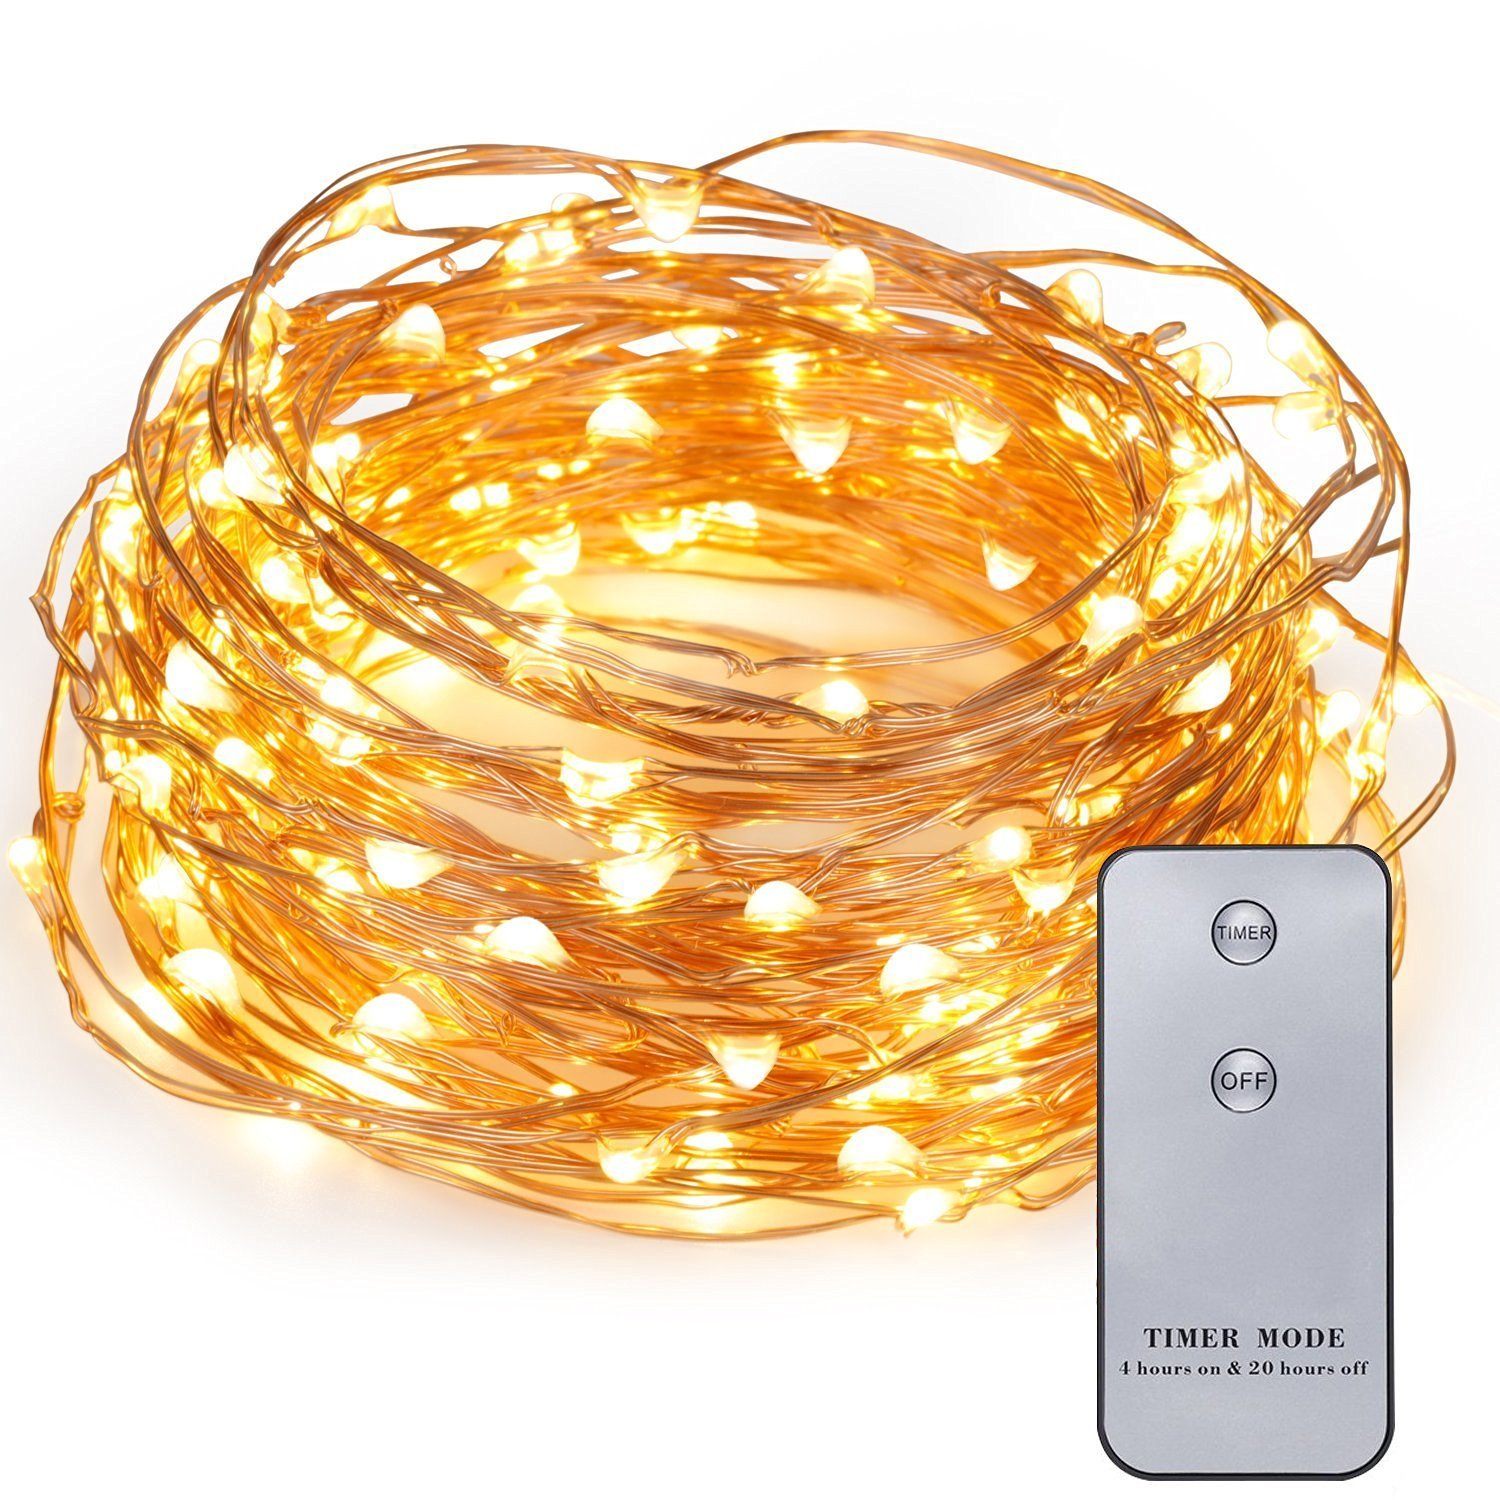 Kohree 120 LED Battery Operated String Light 20ft Copper Wire Waterproof Design Decor Rope Lights with Remote Control